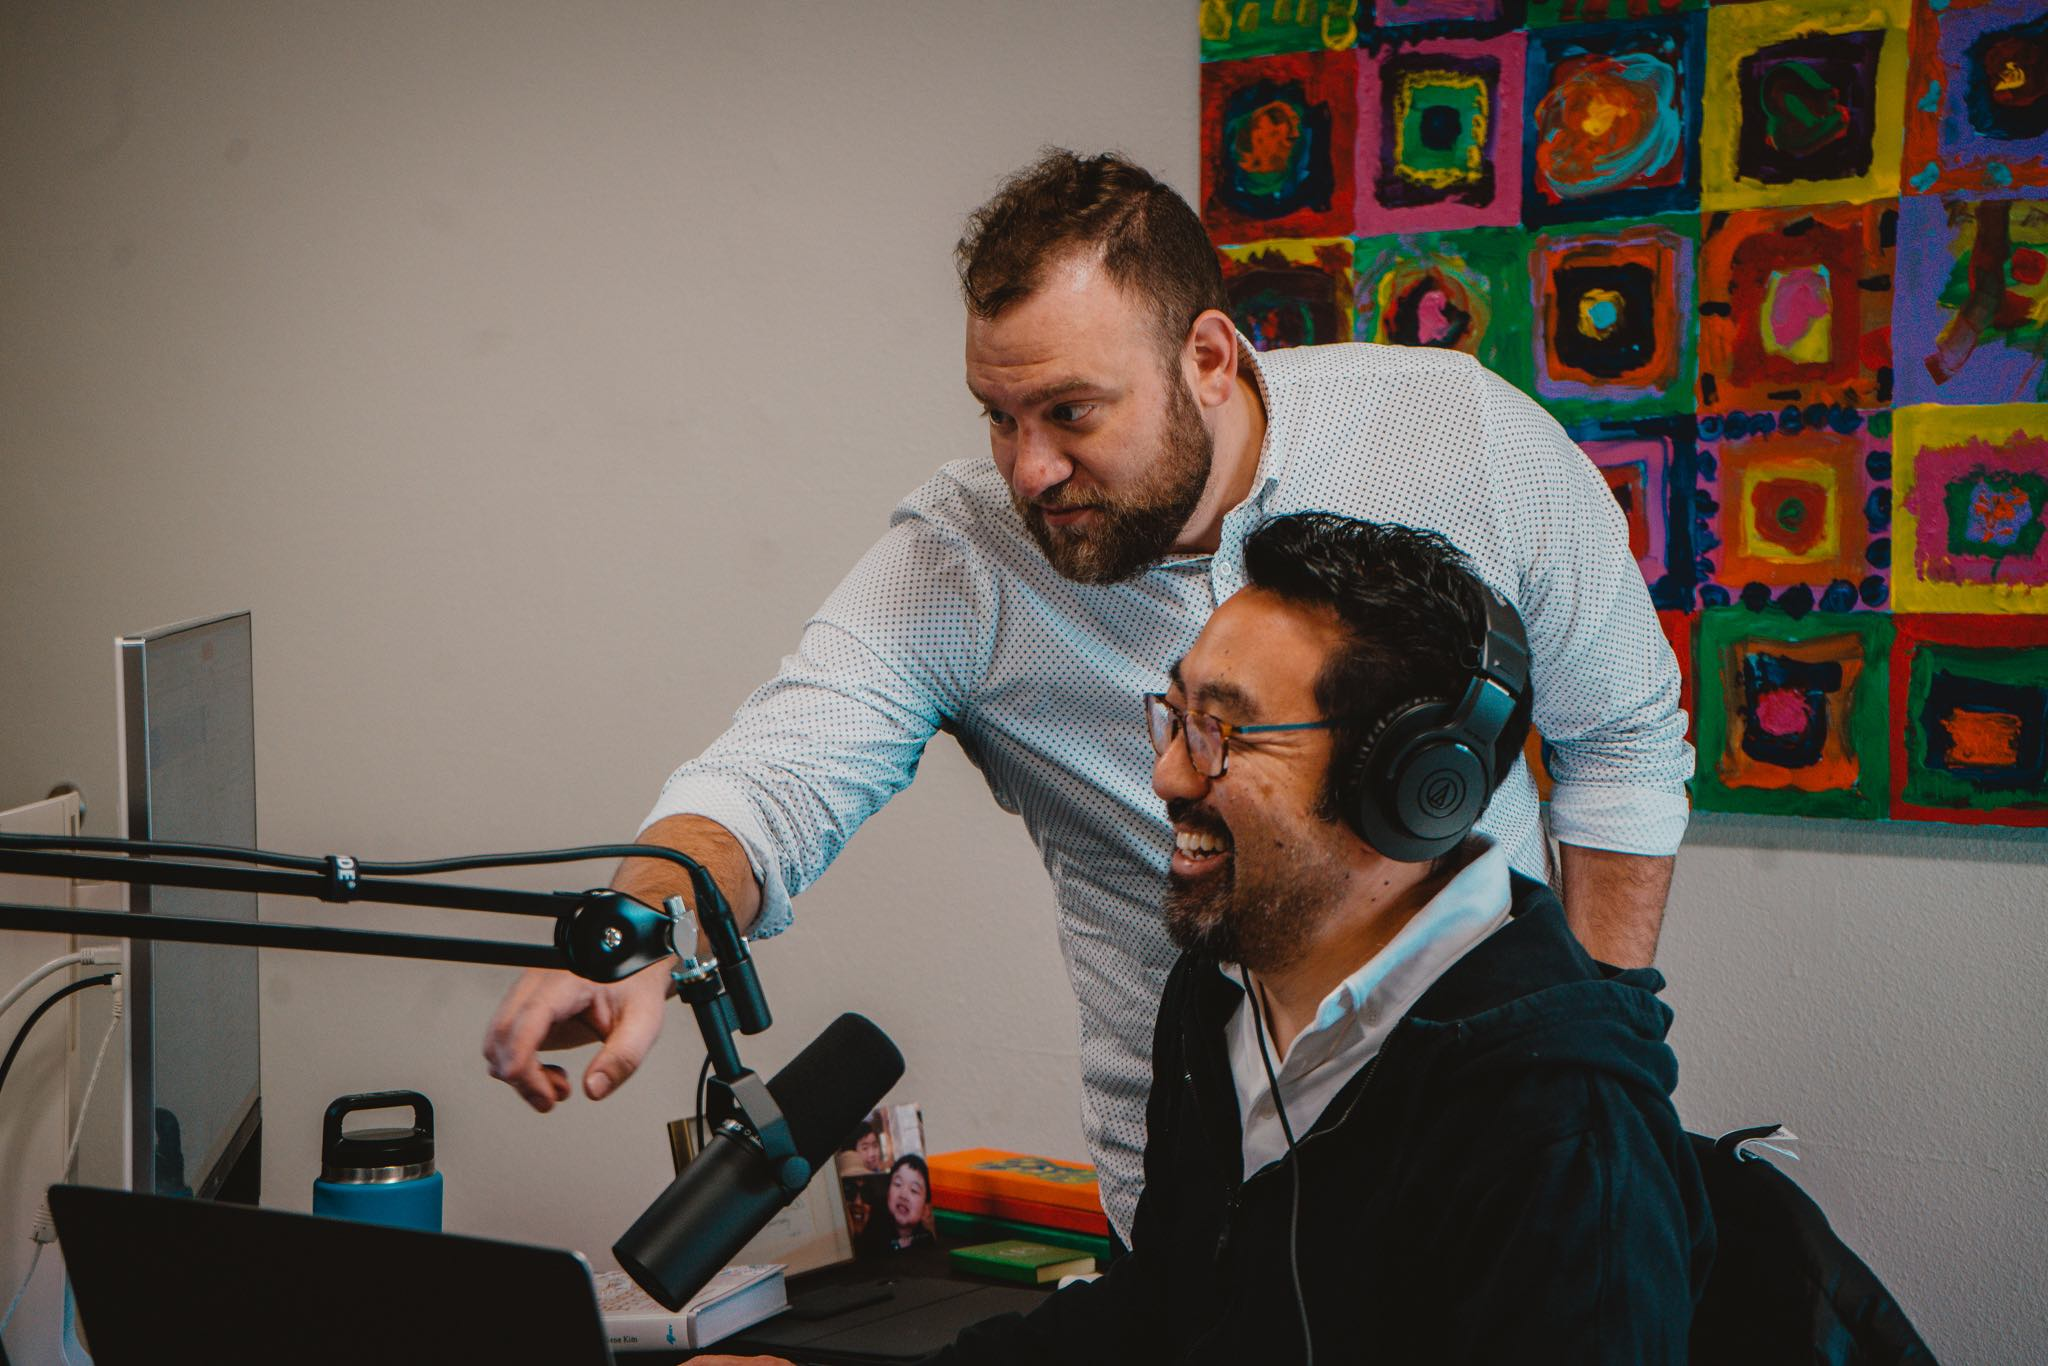 Teaching podcasting